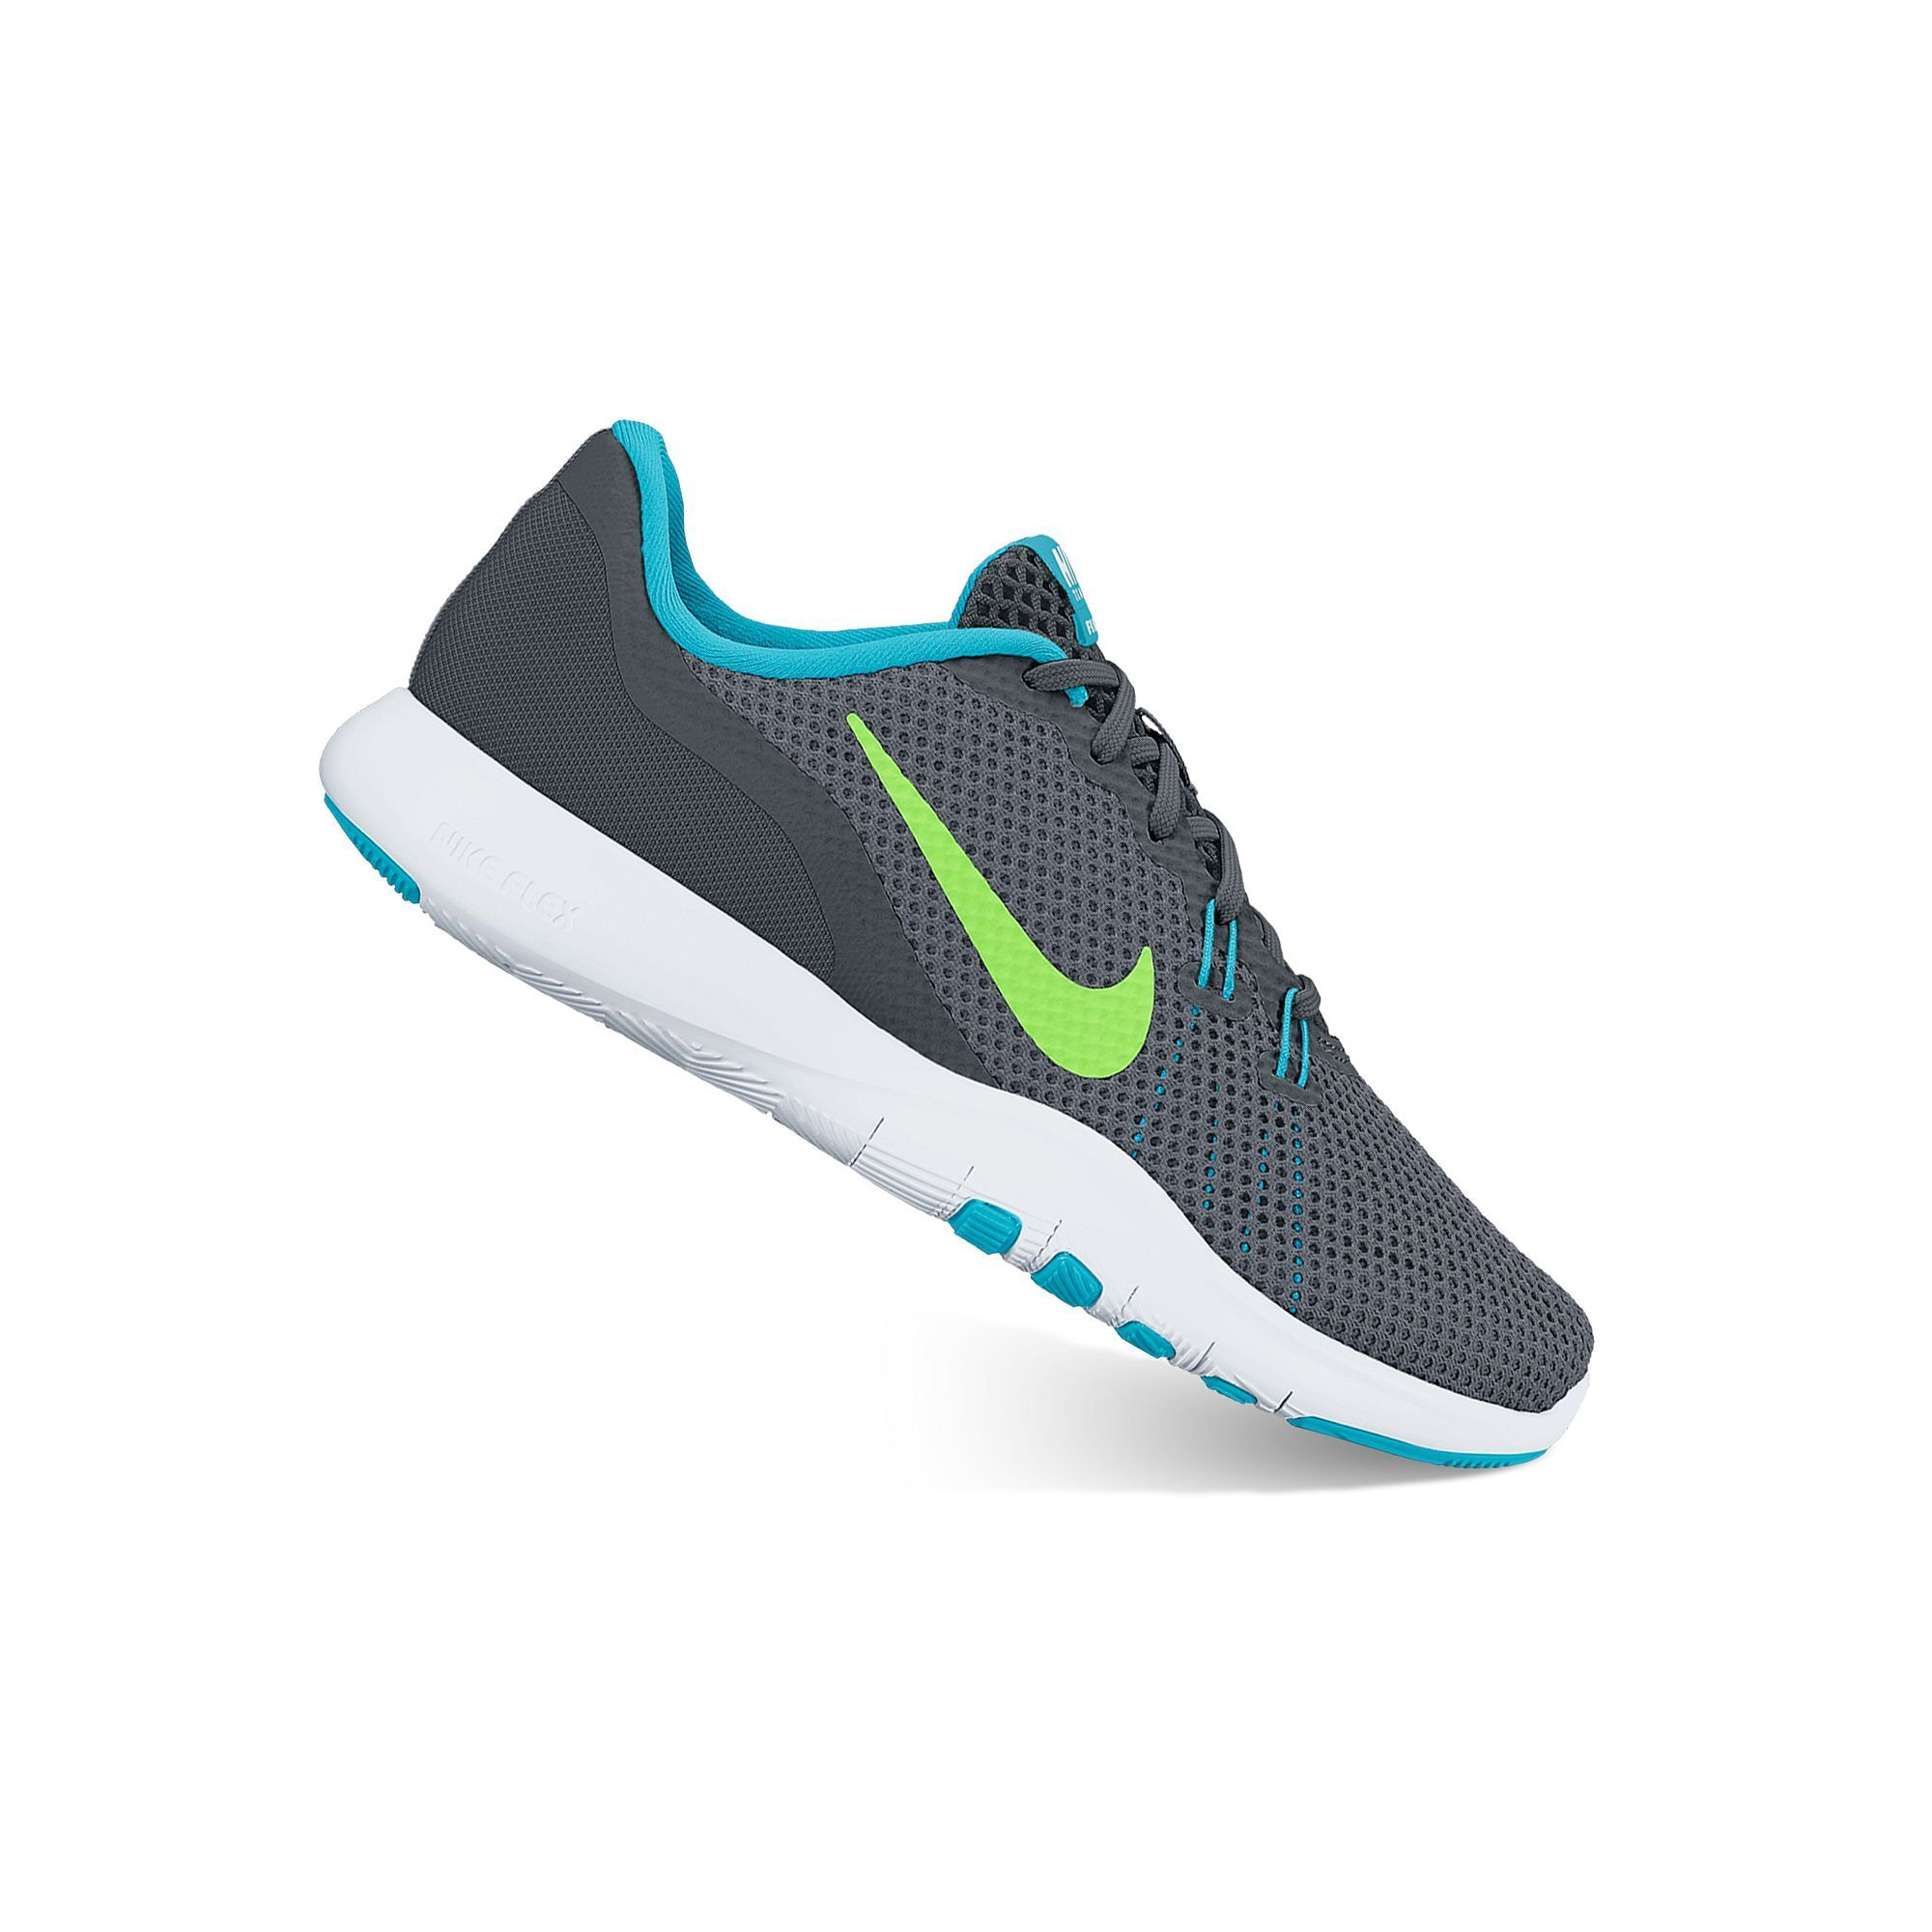 Nike Run Swift Lightweight Running Shoe Men's Men's Shoes